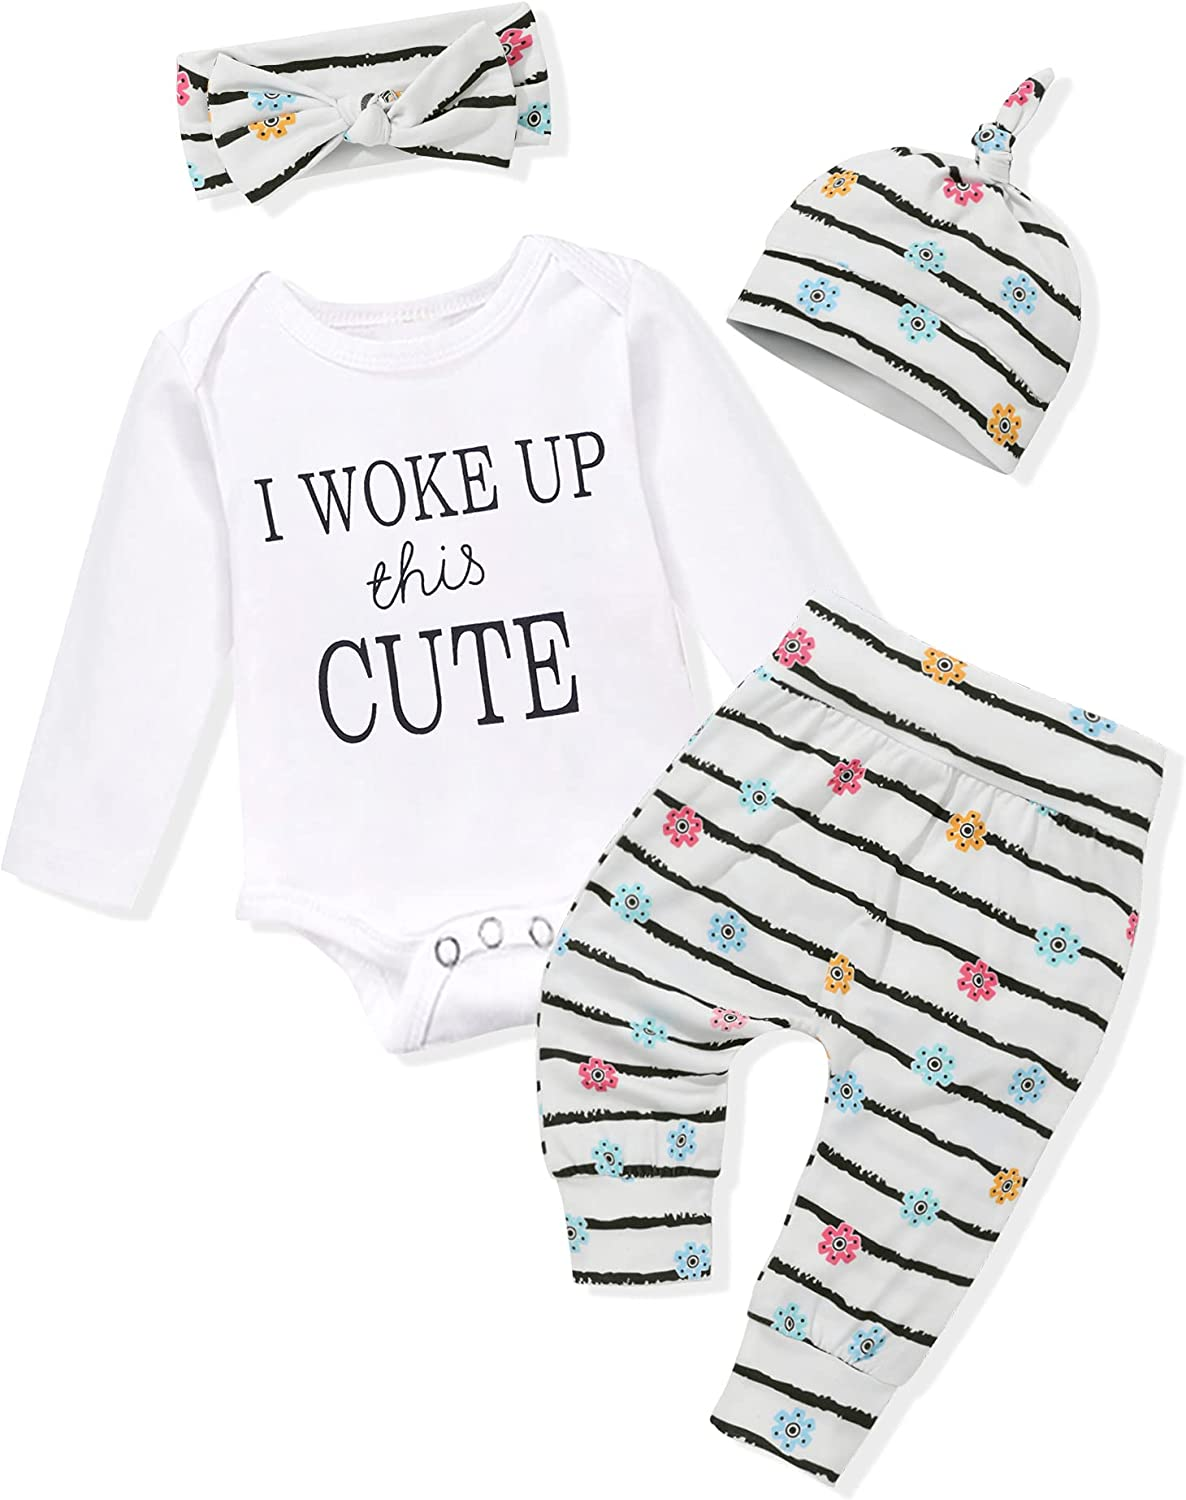 WIQI Newborn Baby Girl Outfits 4PCS Set Long Sleeve Romper Pants Cute Toddler Baby Girl Clothes With Headband